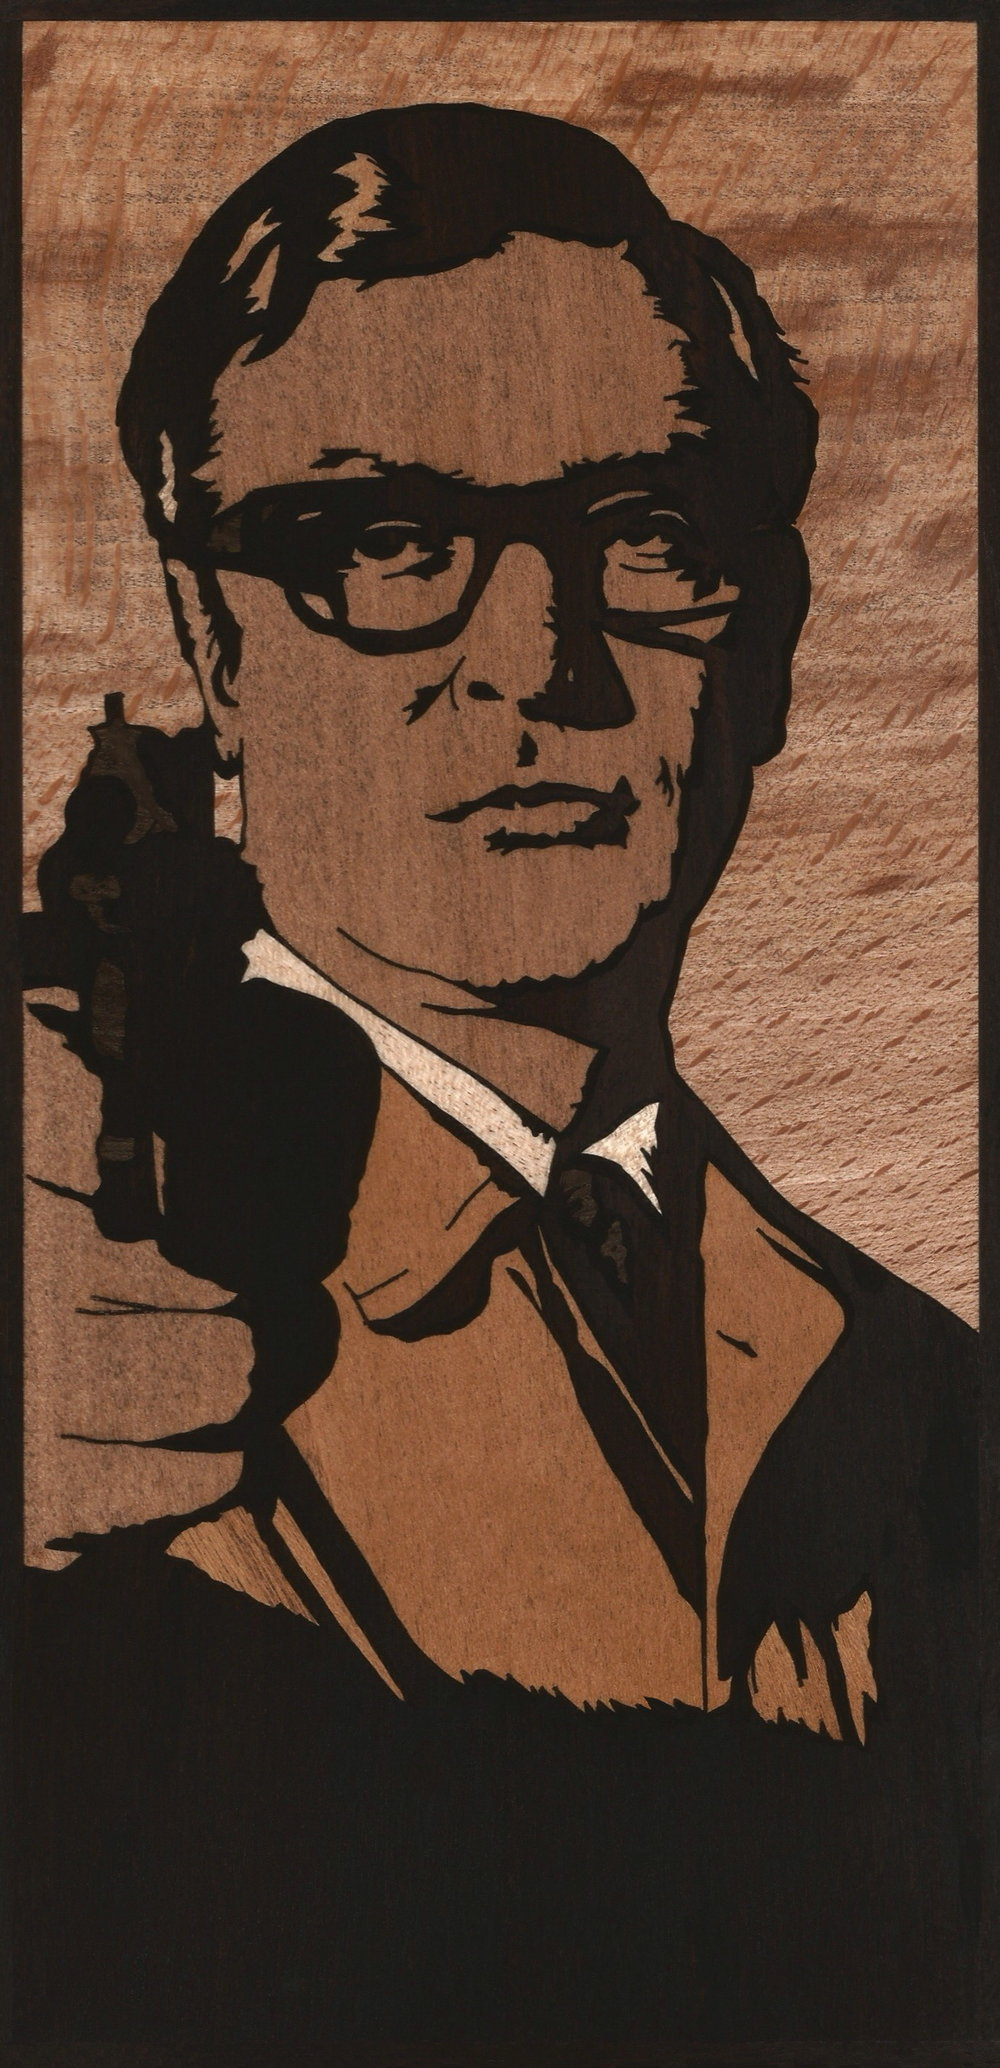 MICHAEL CAINE INLAY